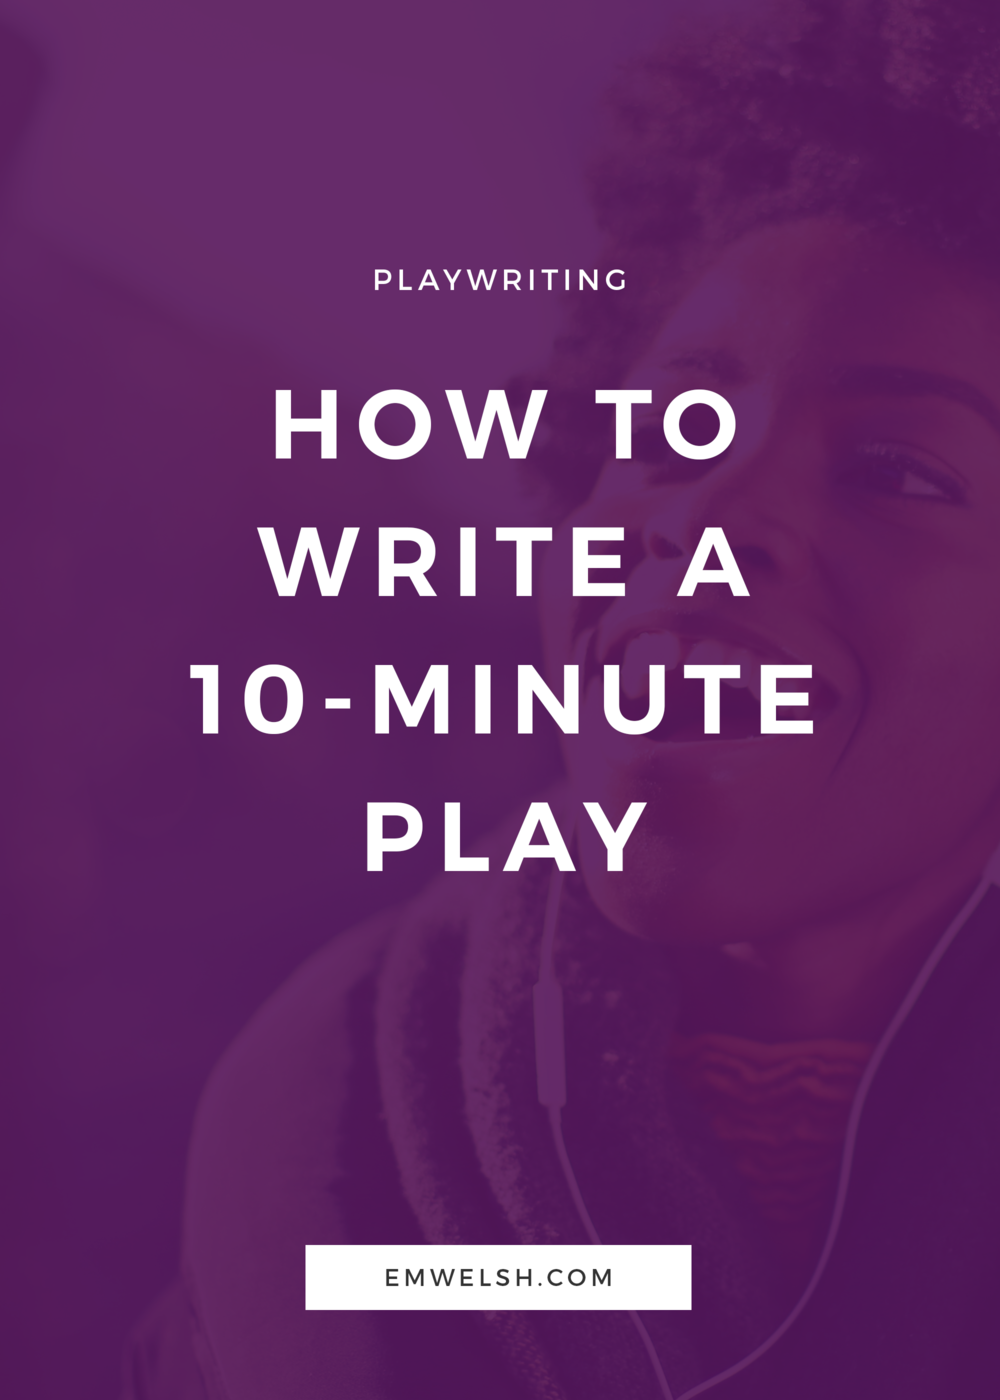 how-to-write-a-10-minute-play.png